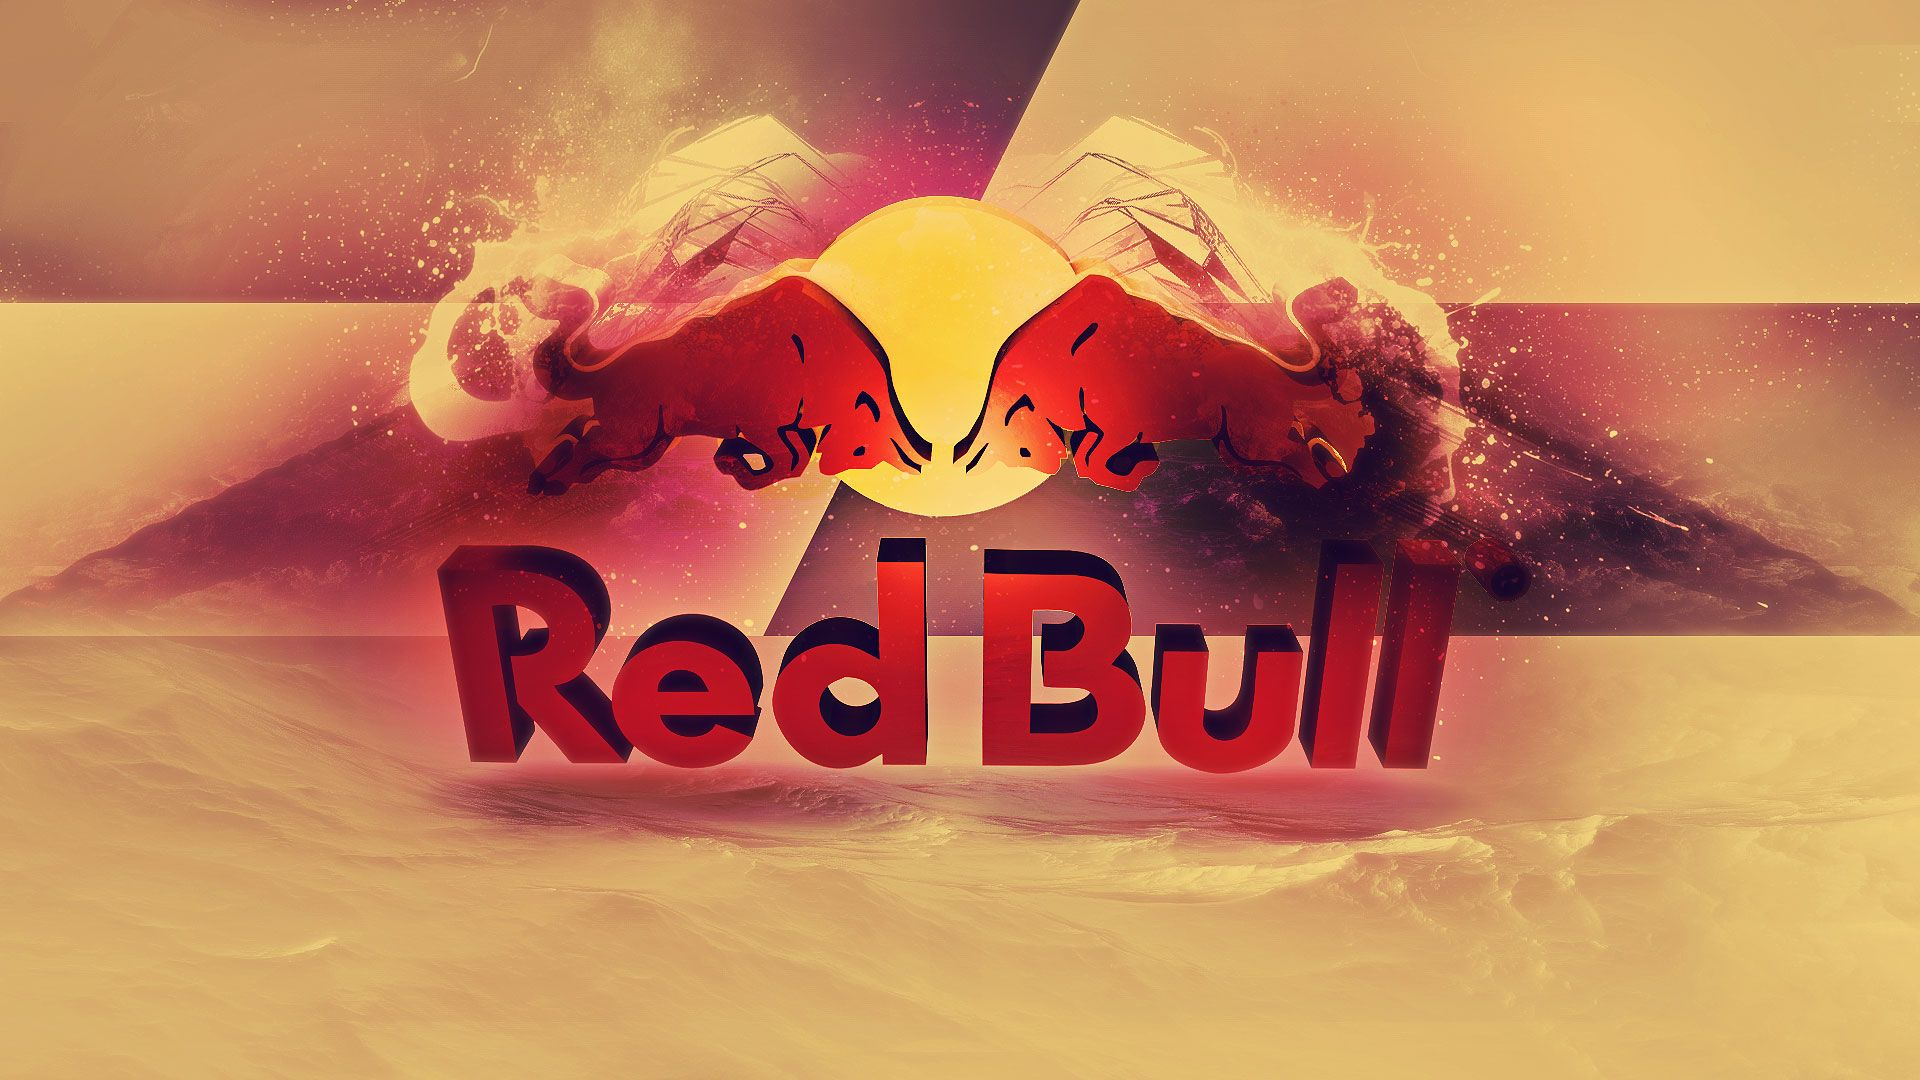 Red Bull Can Drawing  wallpaper  Red Bull Racing Wallpapers  Wallpaper  1920x1080